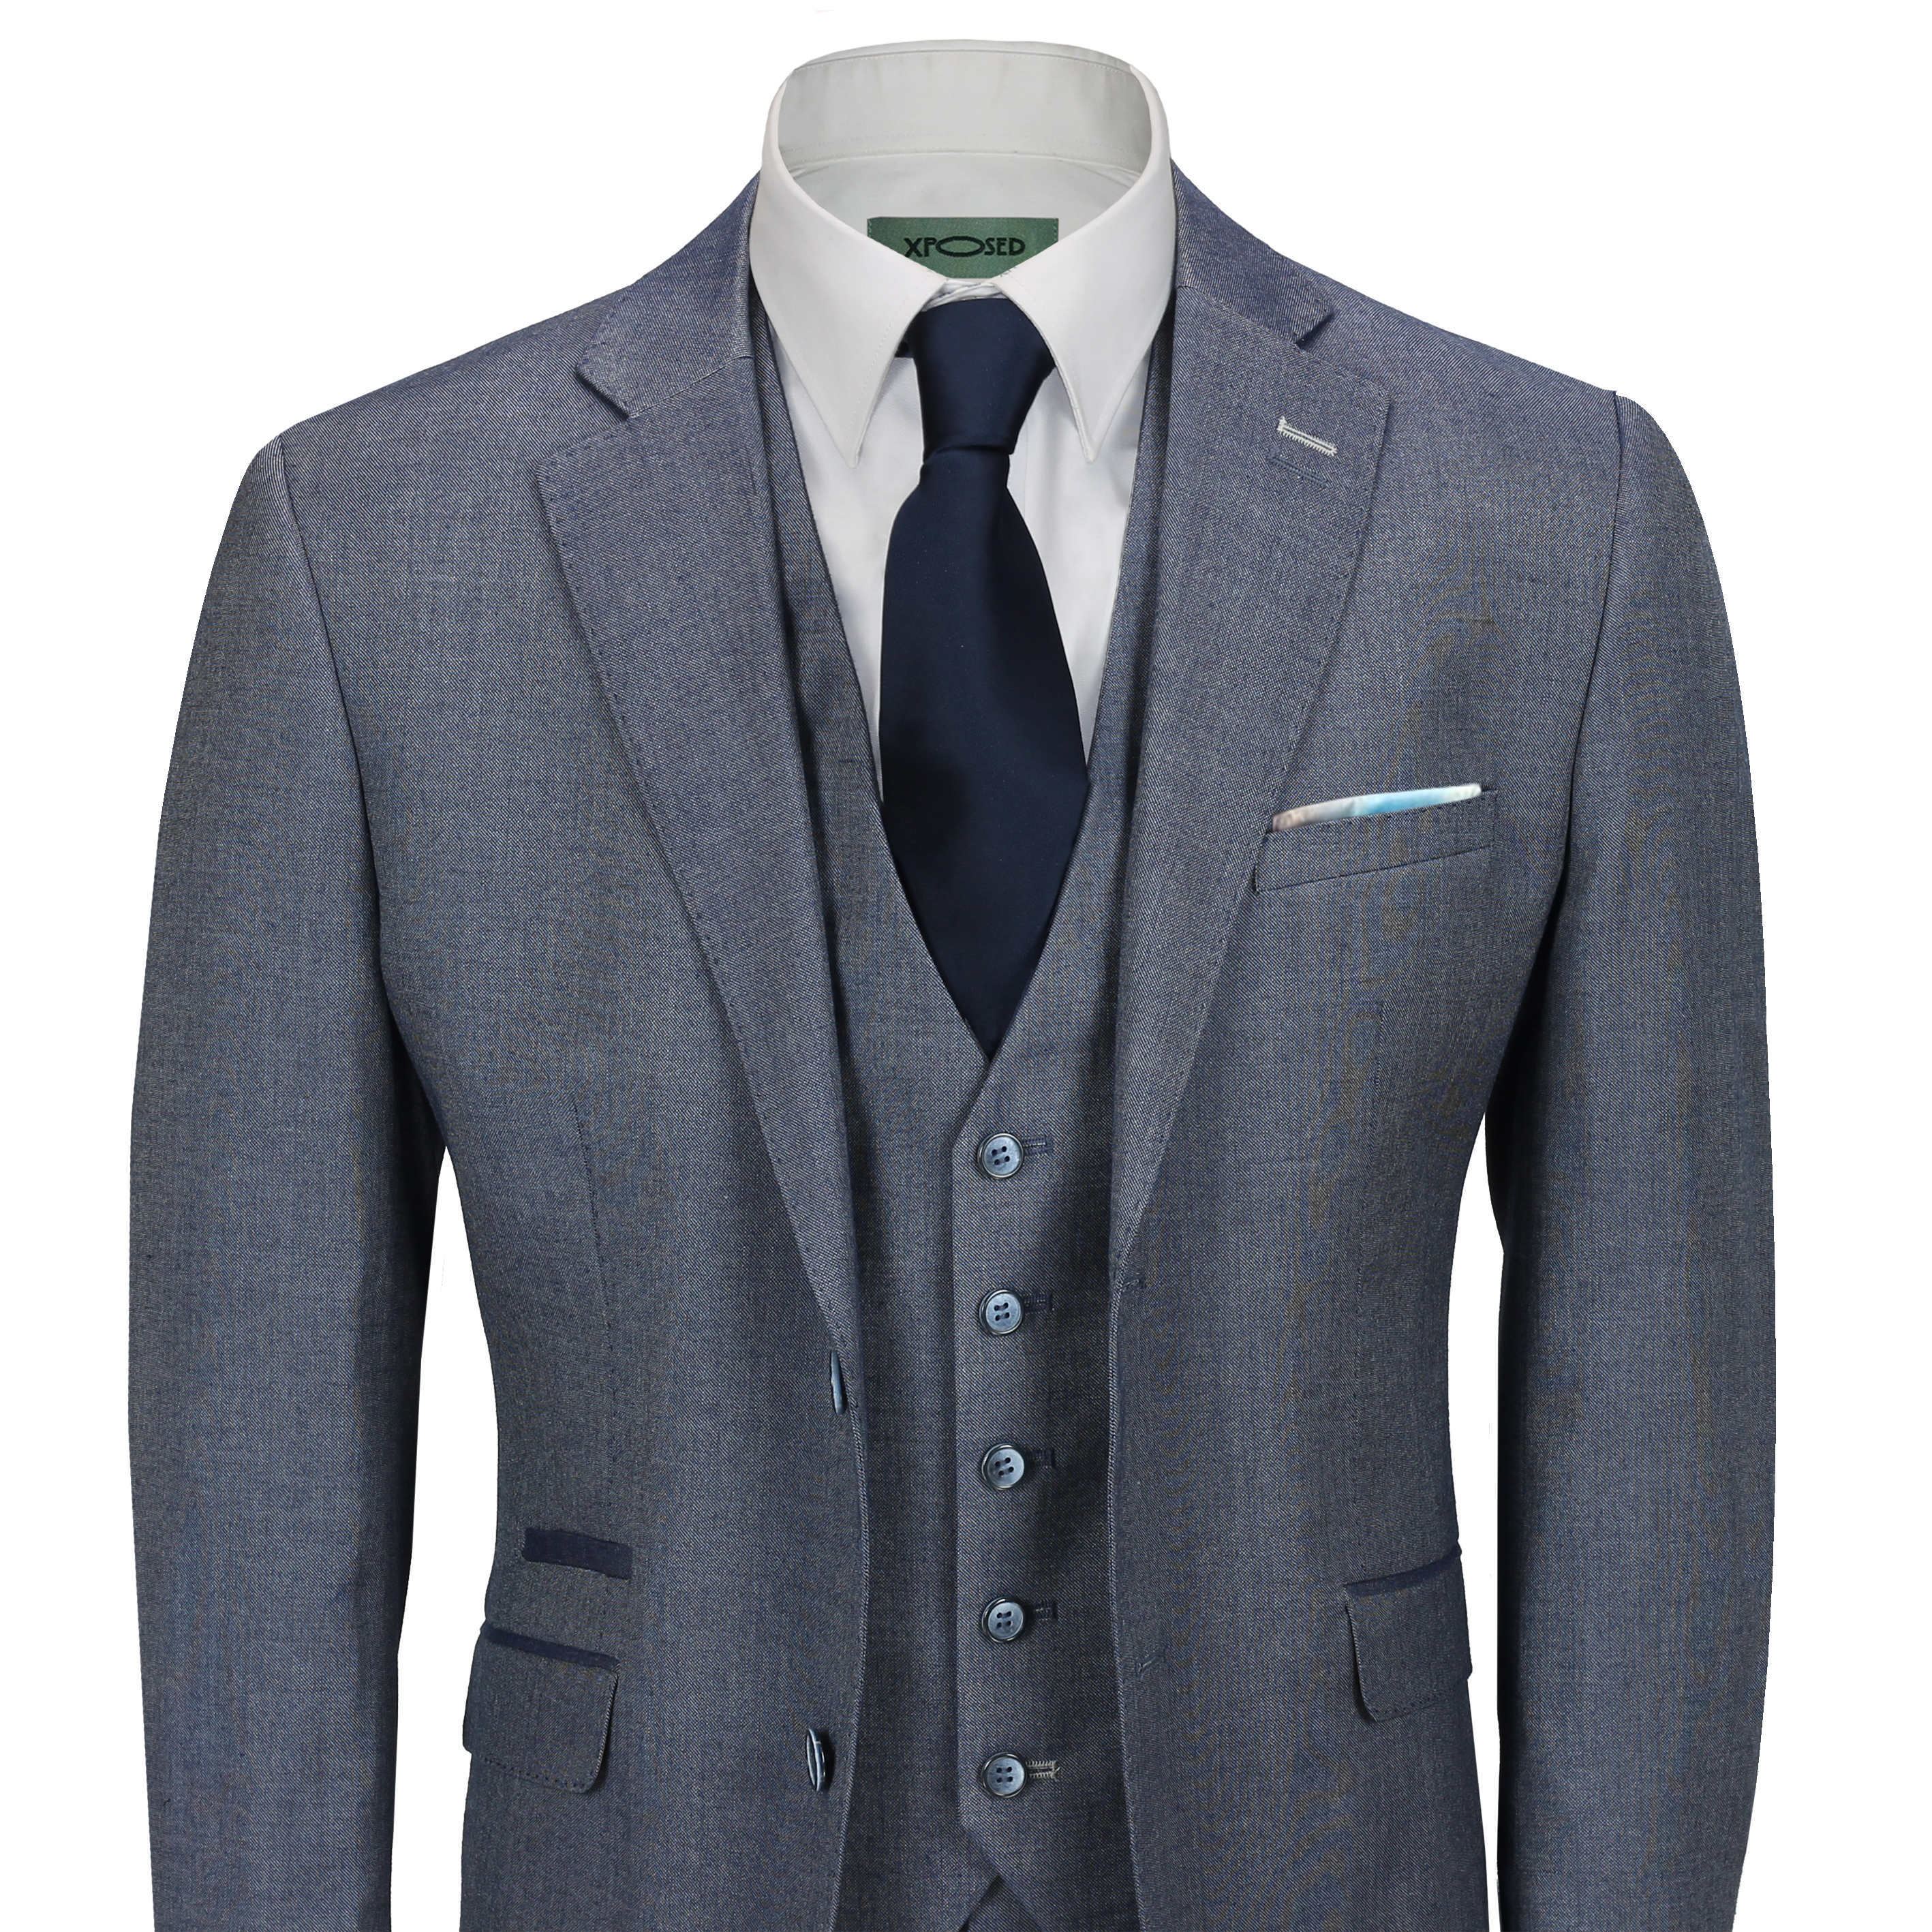 b67309b8a5 Details about Mens Blue Grey Classic 3 Piece Suit Formal Work Smart Casual  Tailored Fit Jacket